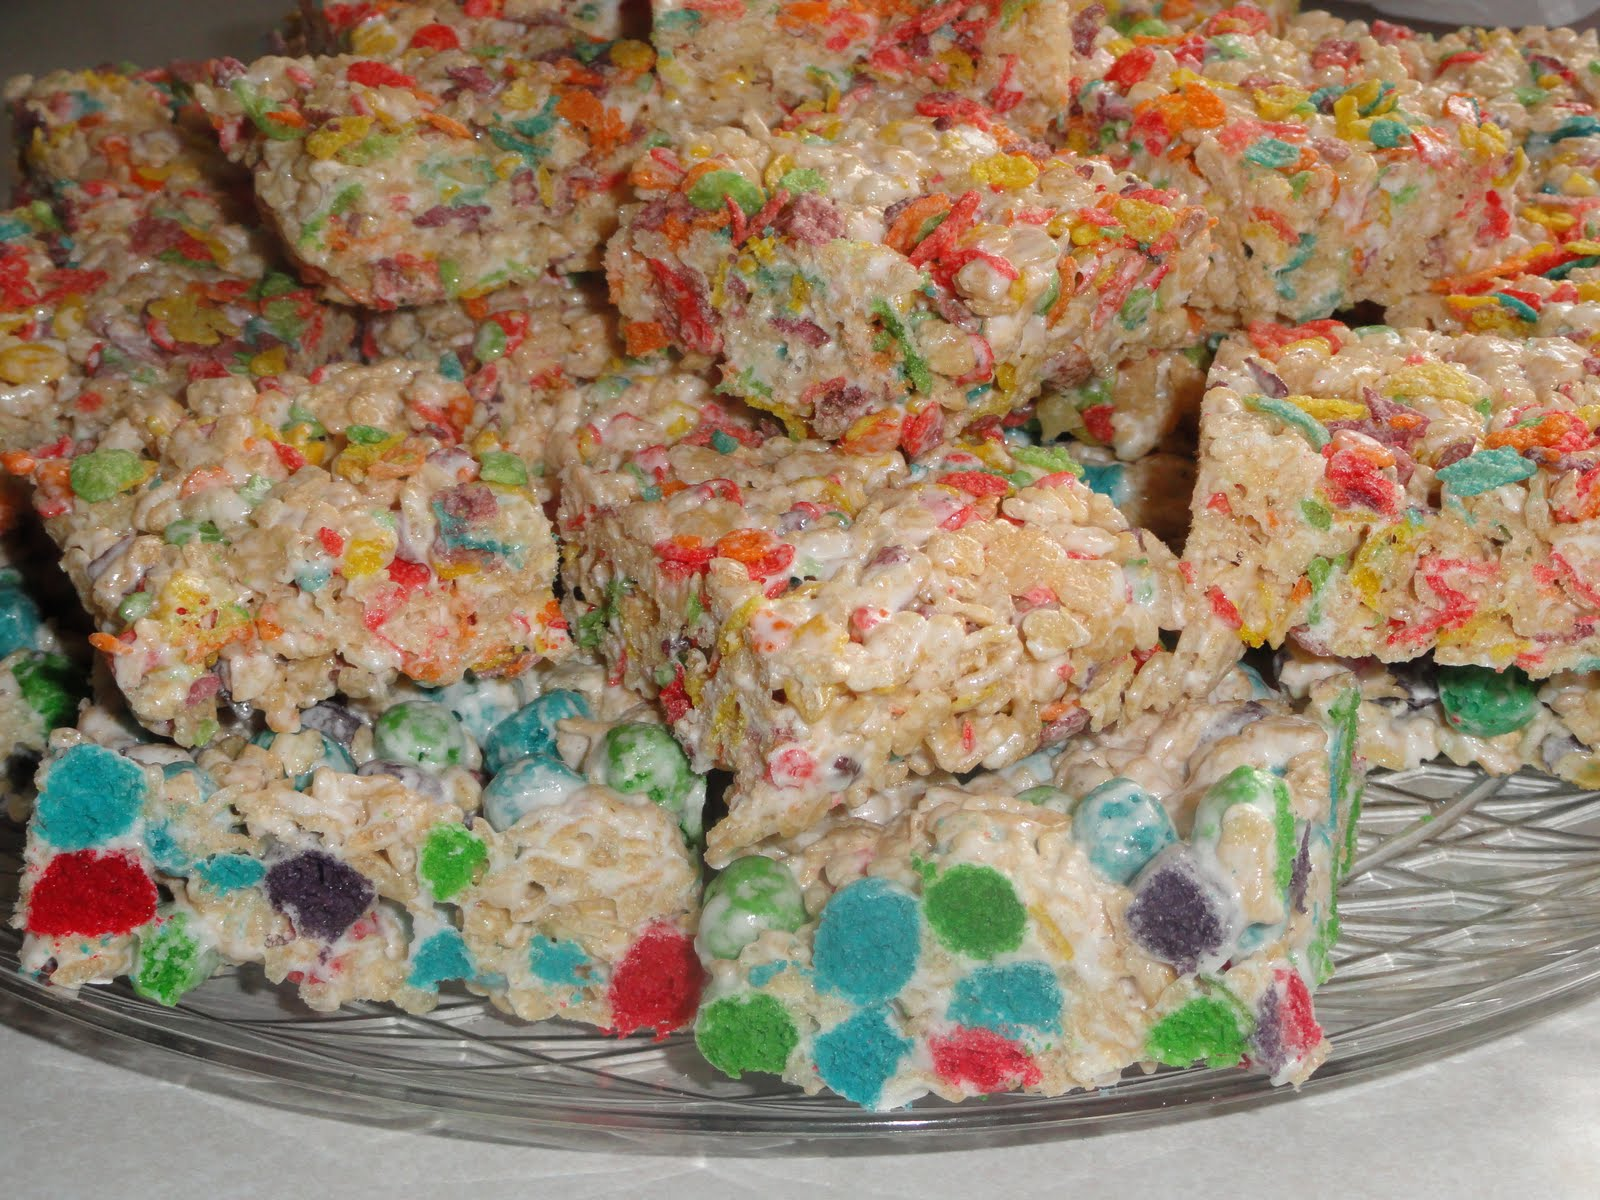 Half fruity pebbles used in krispie treats